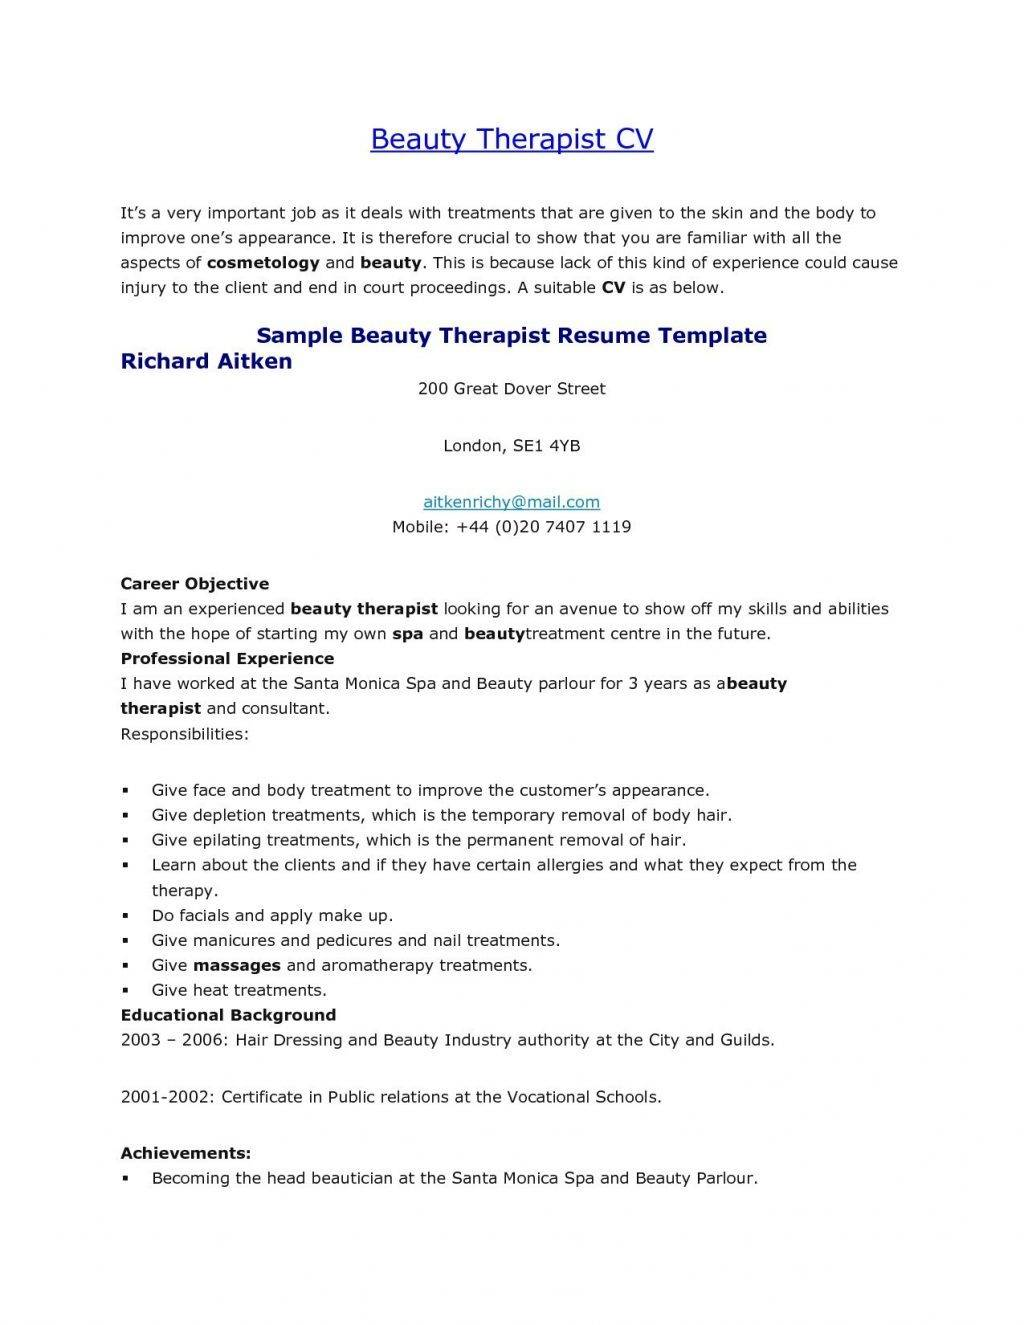 Resume Templates For Spa Receptionist